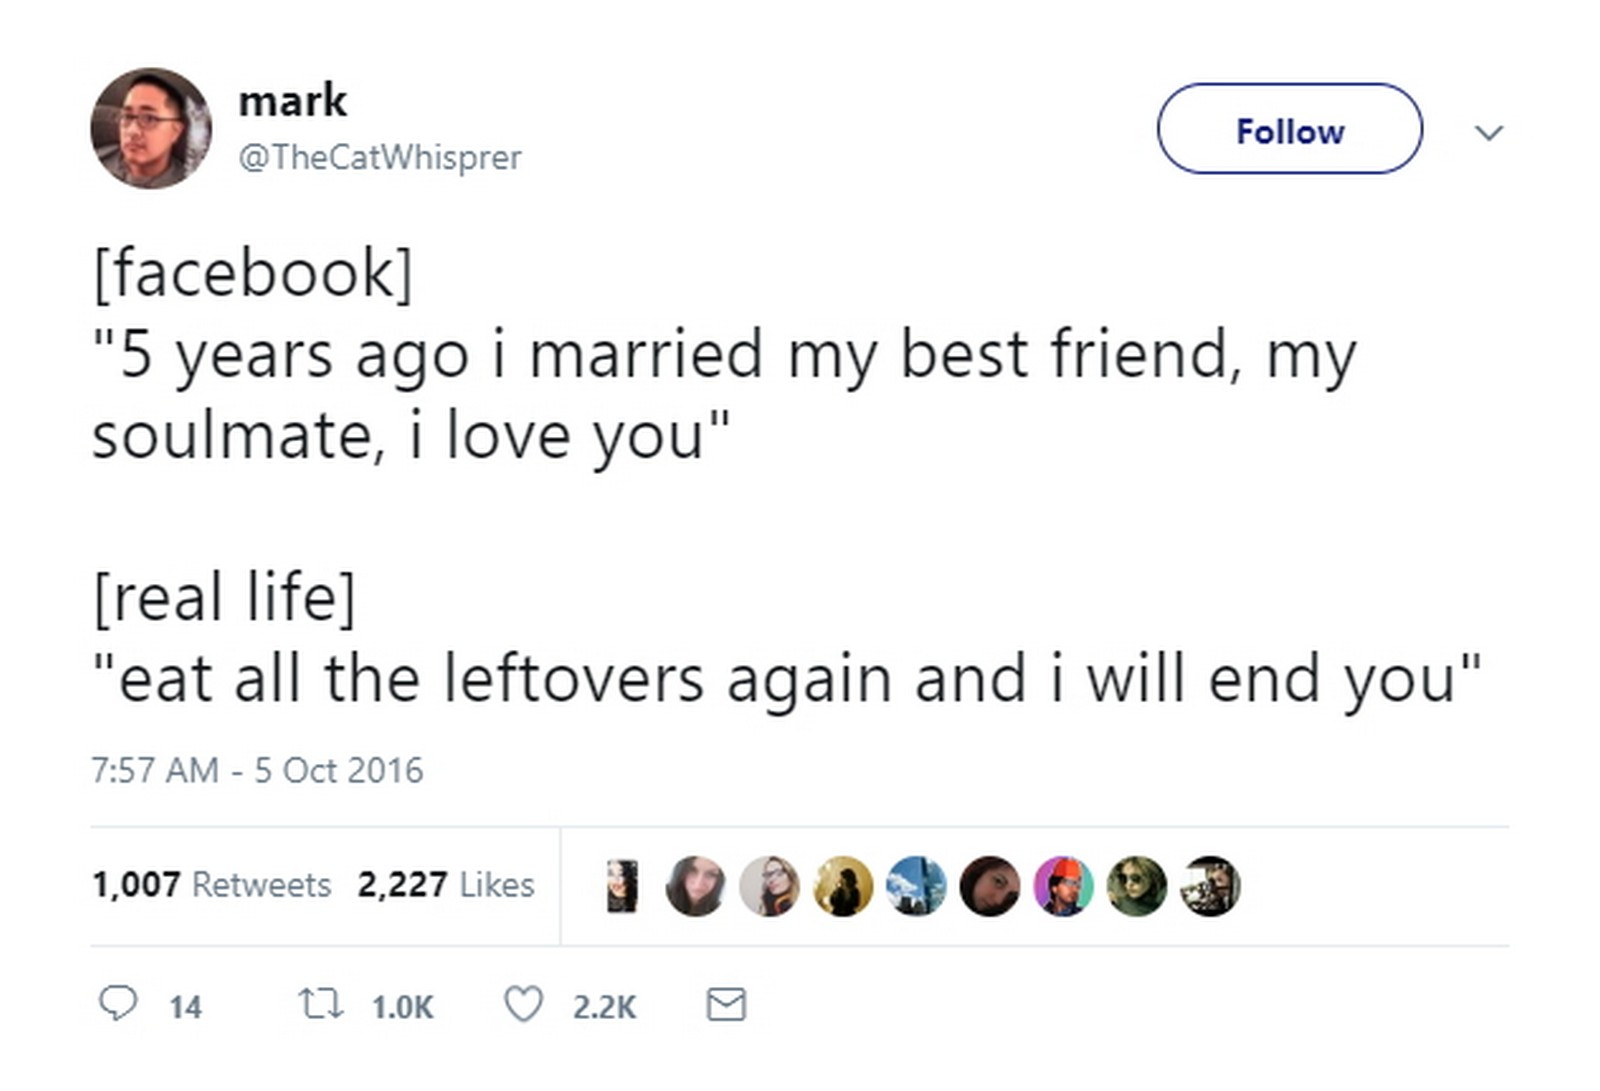 27 Best Marriage Tweets - My pet peeve is people pretending to have the perfect lives on Facebook.